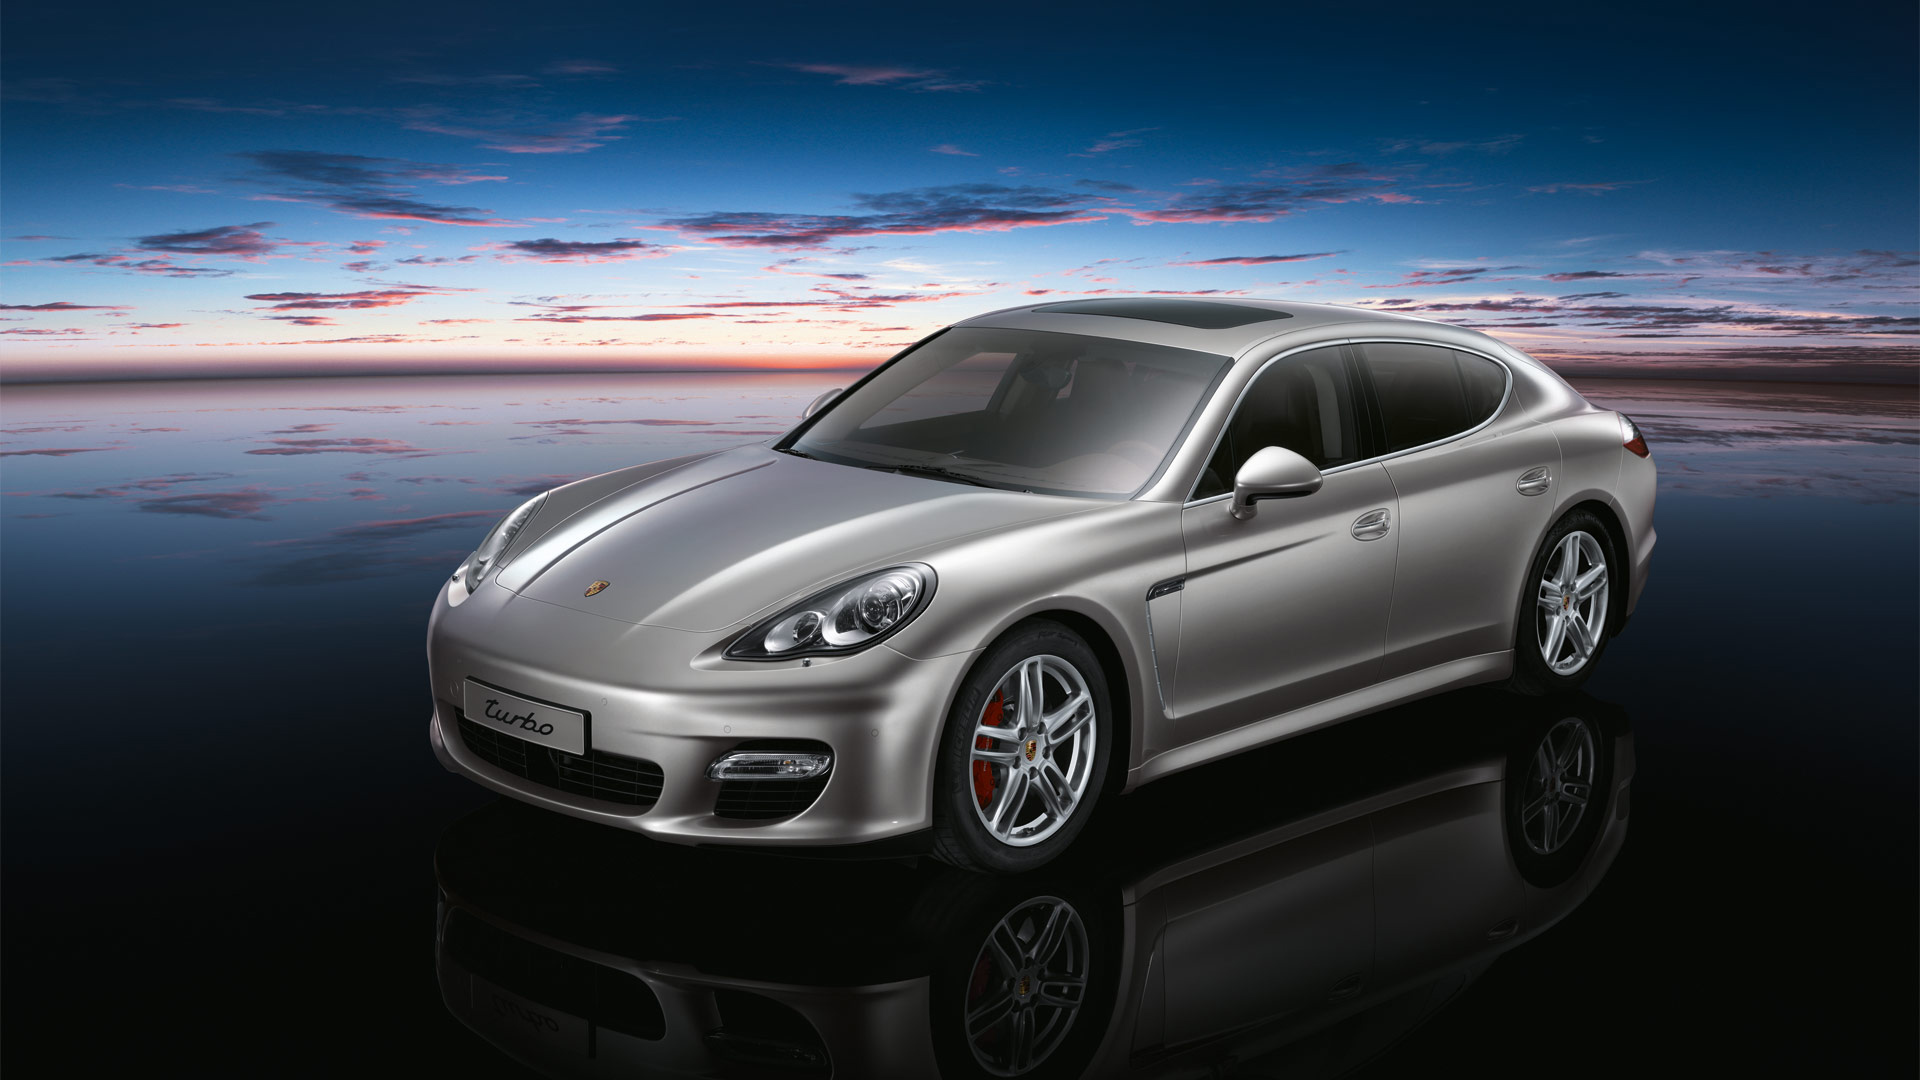 Porsche Panamera Turbo 540.67 Kb